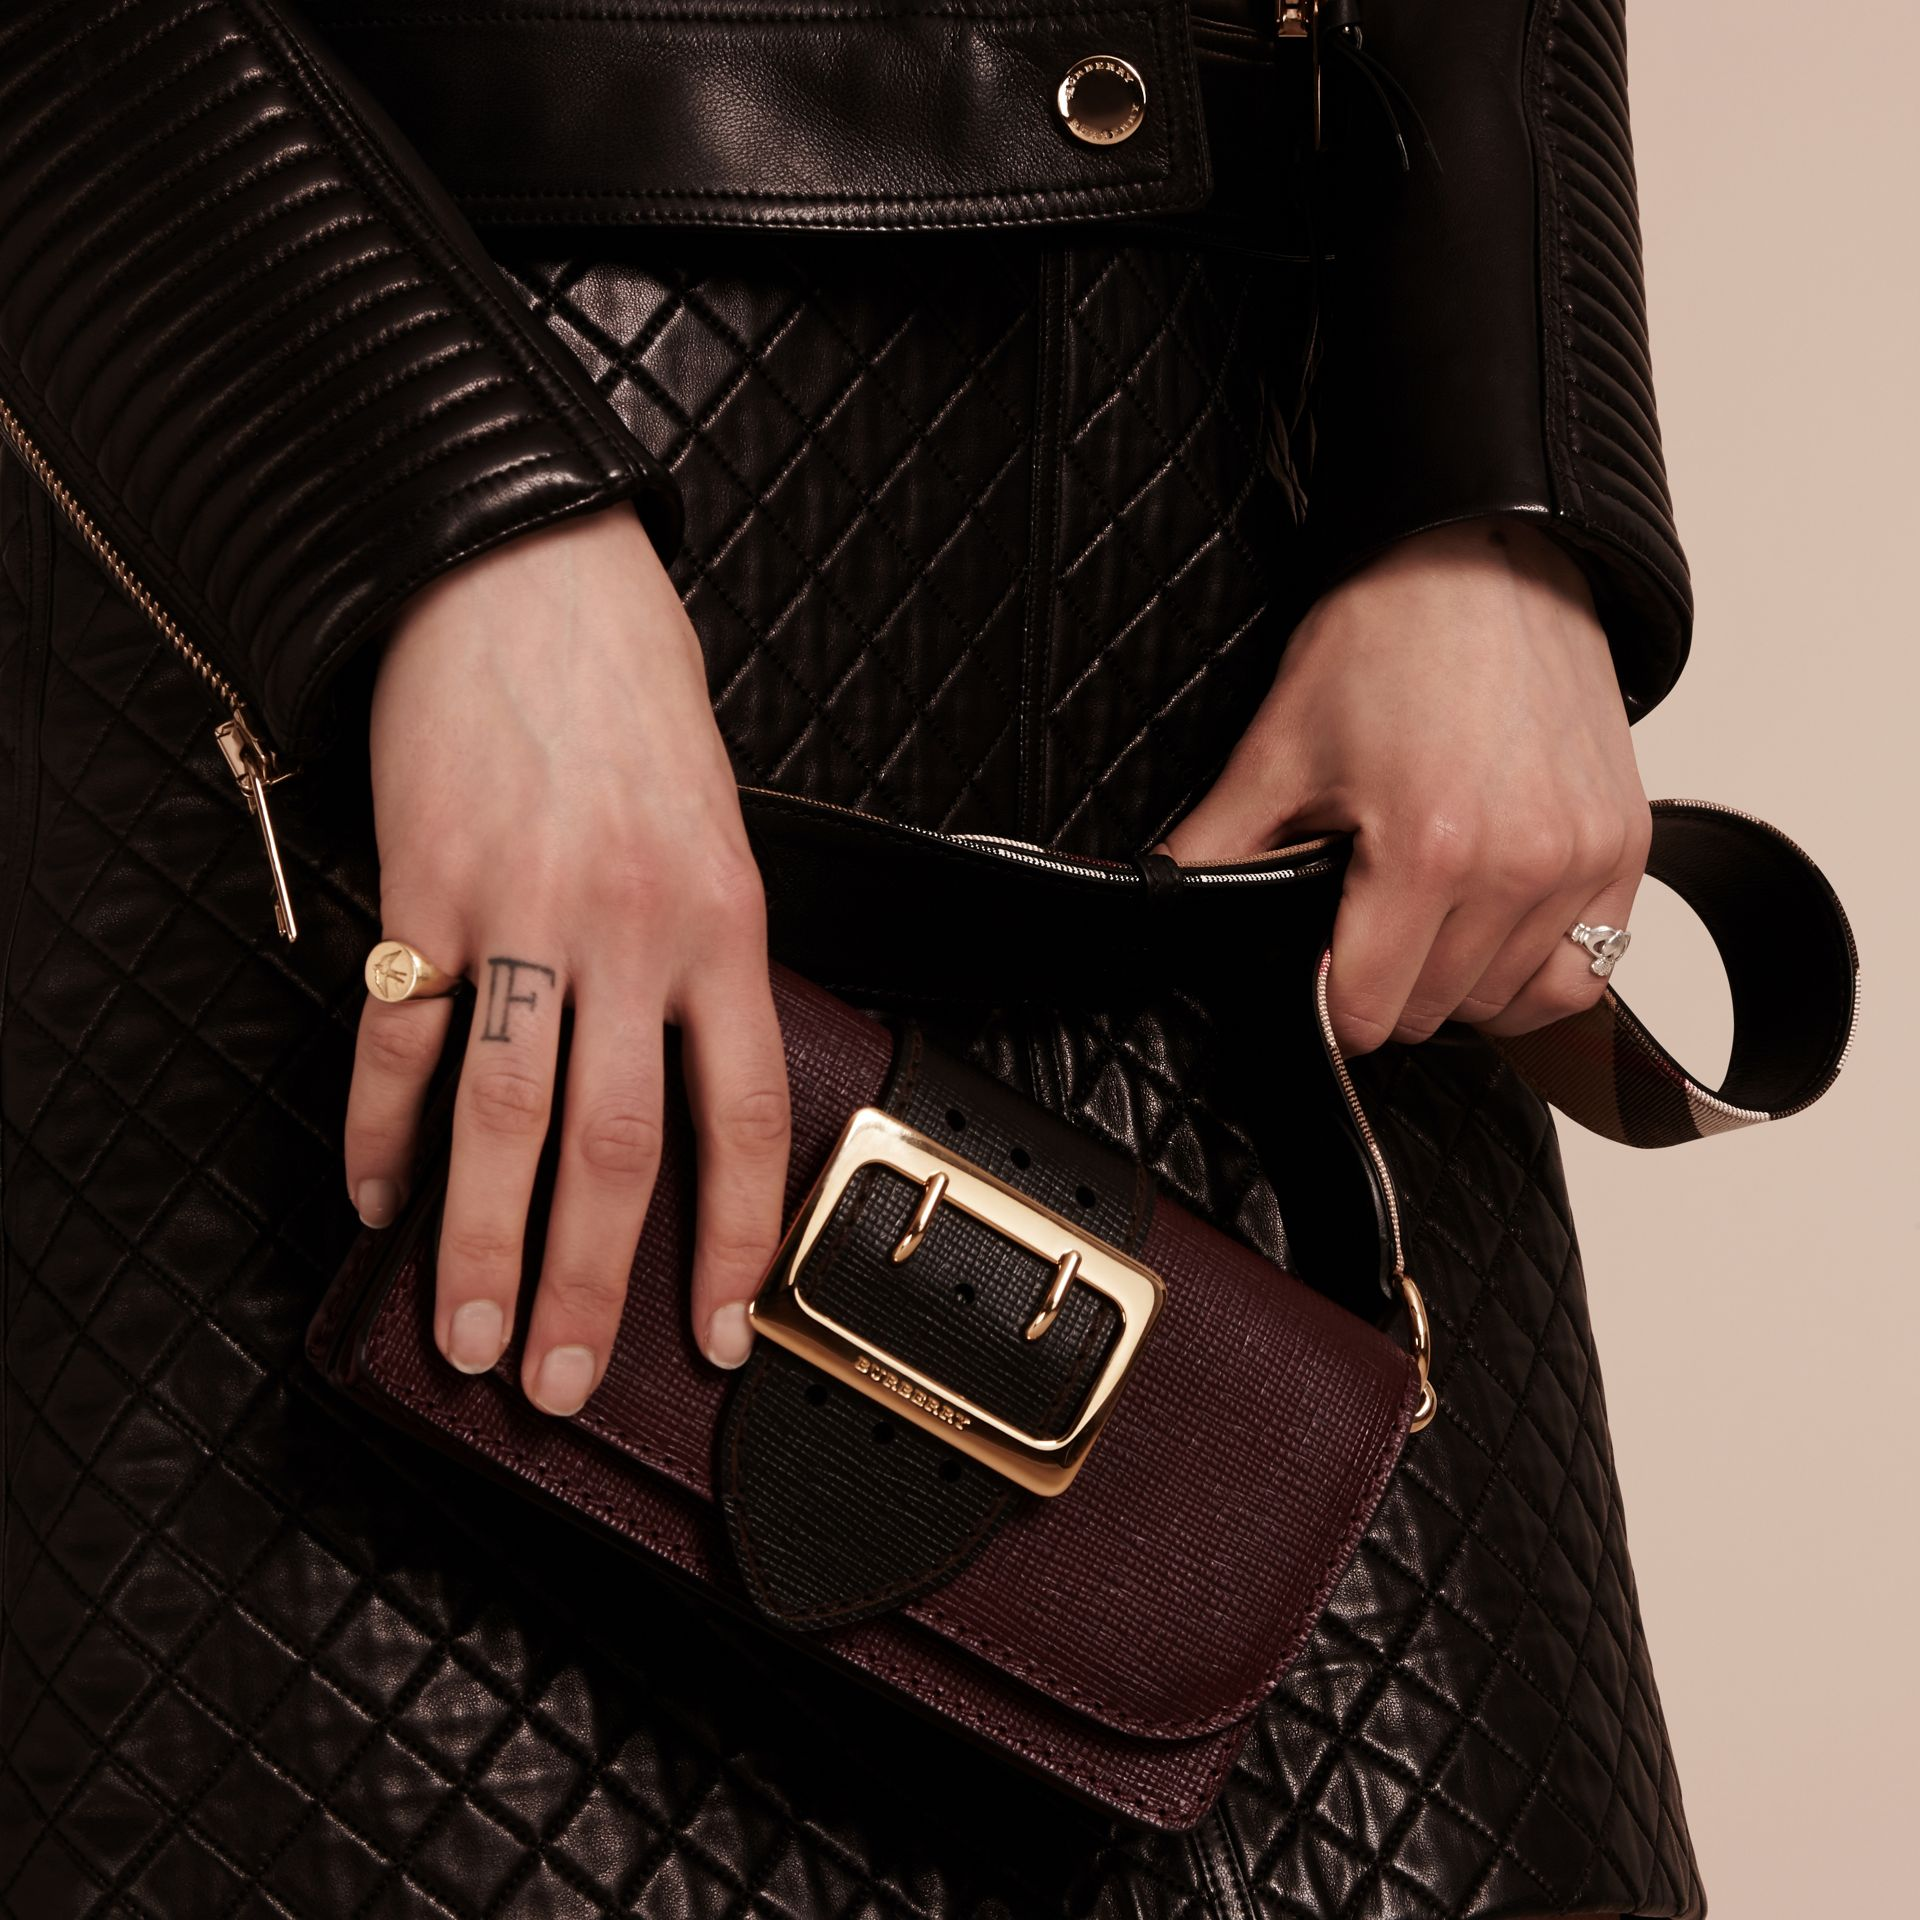 Burgundy/black The Small Buckle Bag in Textured Leather Burgundy/black - gallery image 4